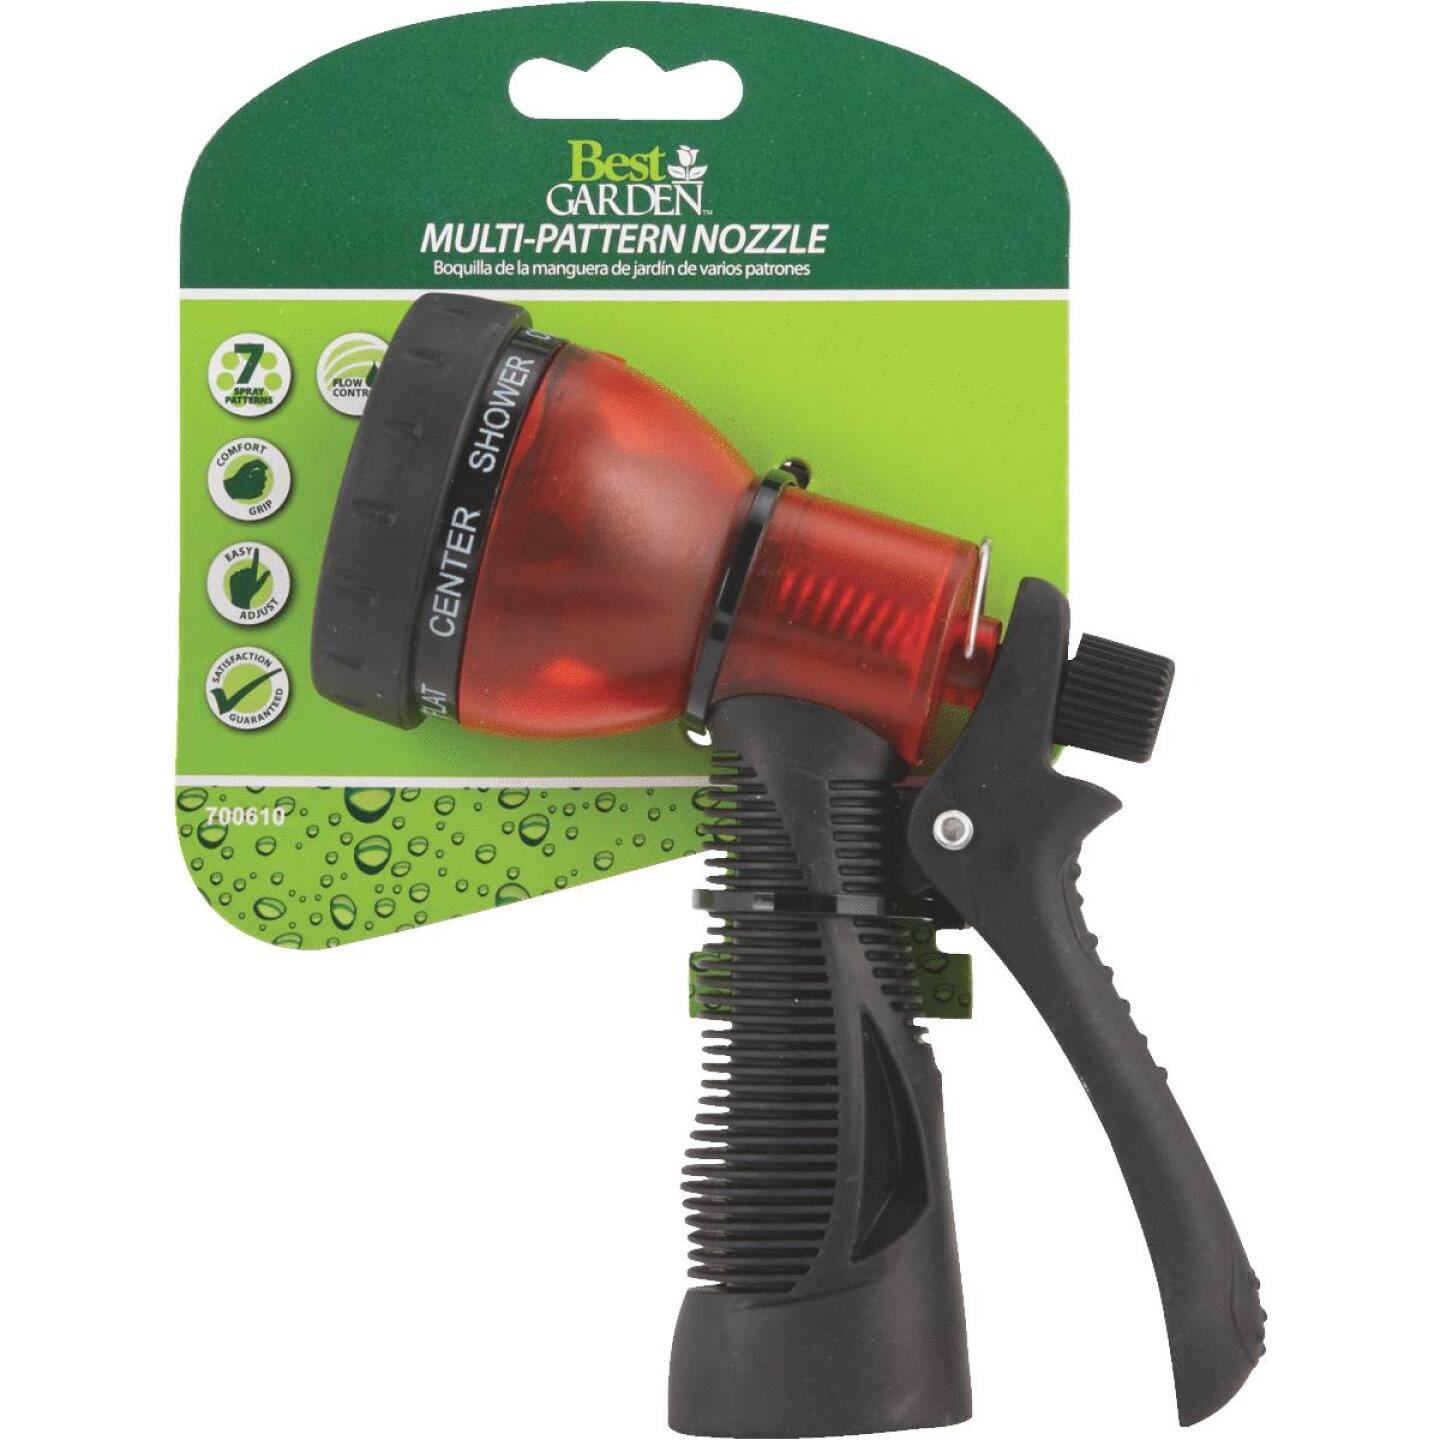 Best Garden Poly Translucent 7-Pattern Nozzle, Assorted Colors Image 4